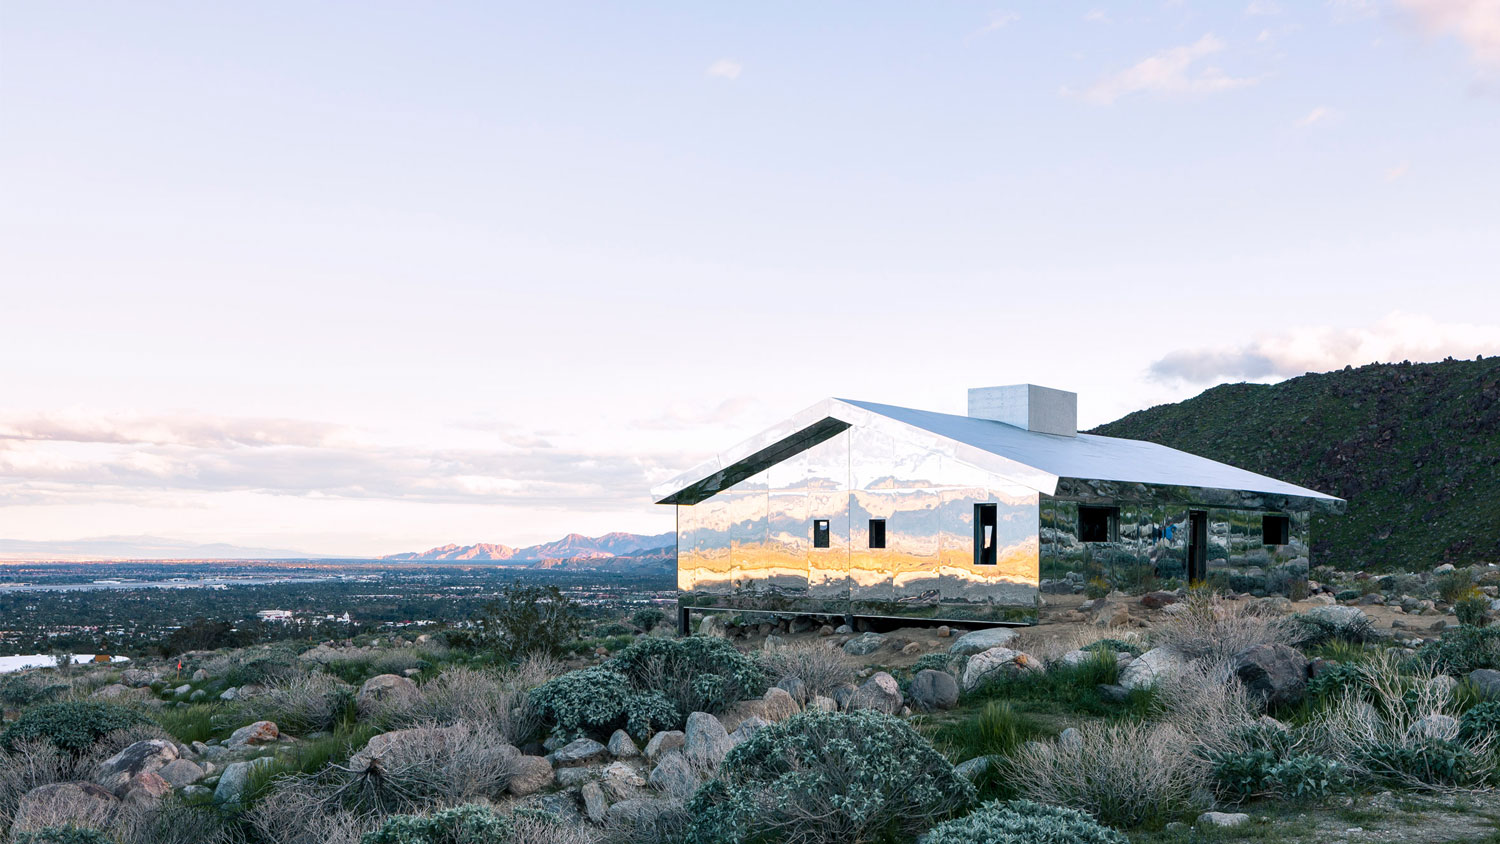 The Mirage Sculpture by Doug Aitken in the Desert Outside Palm Springs   Yellowtrace